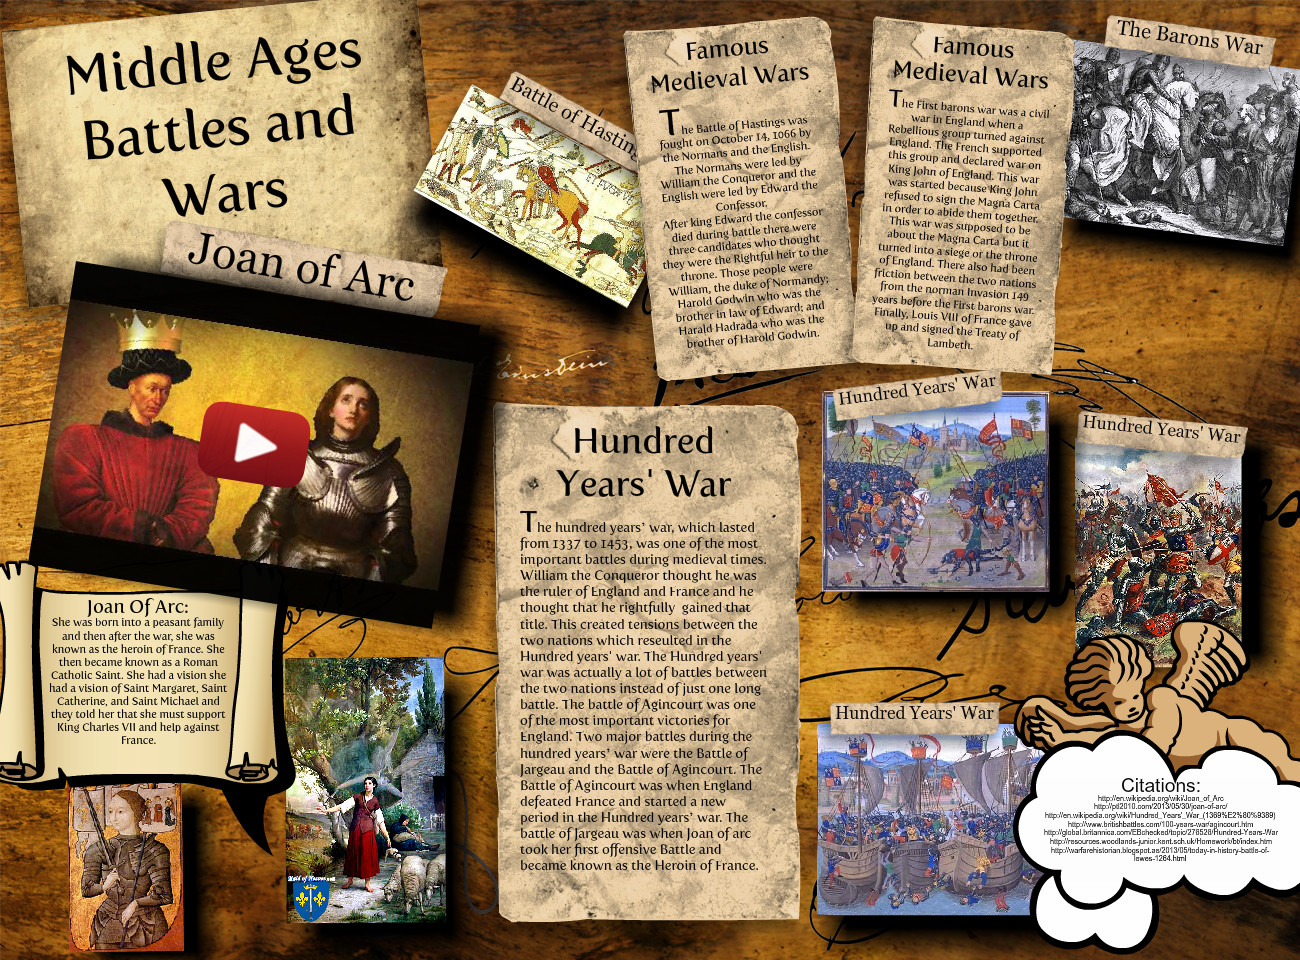 Middle Ages: Battles and Wars